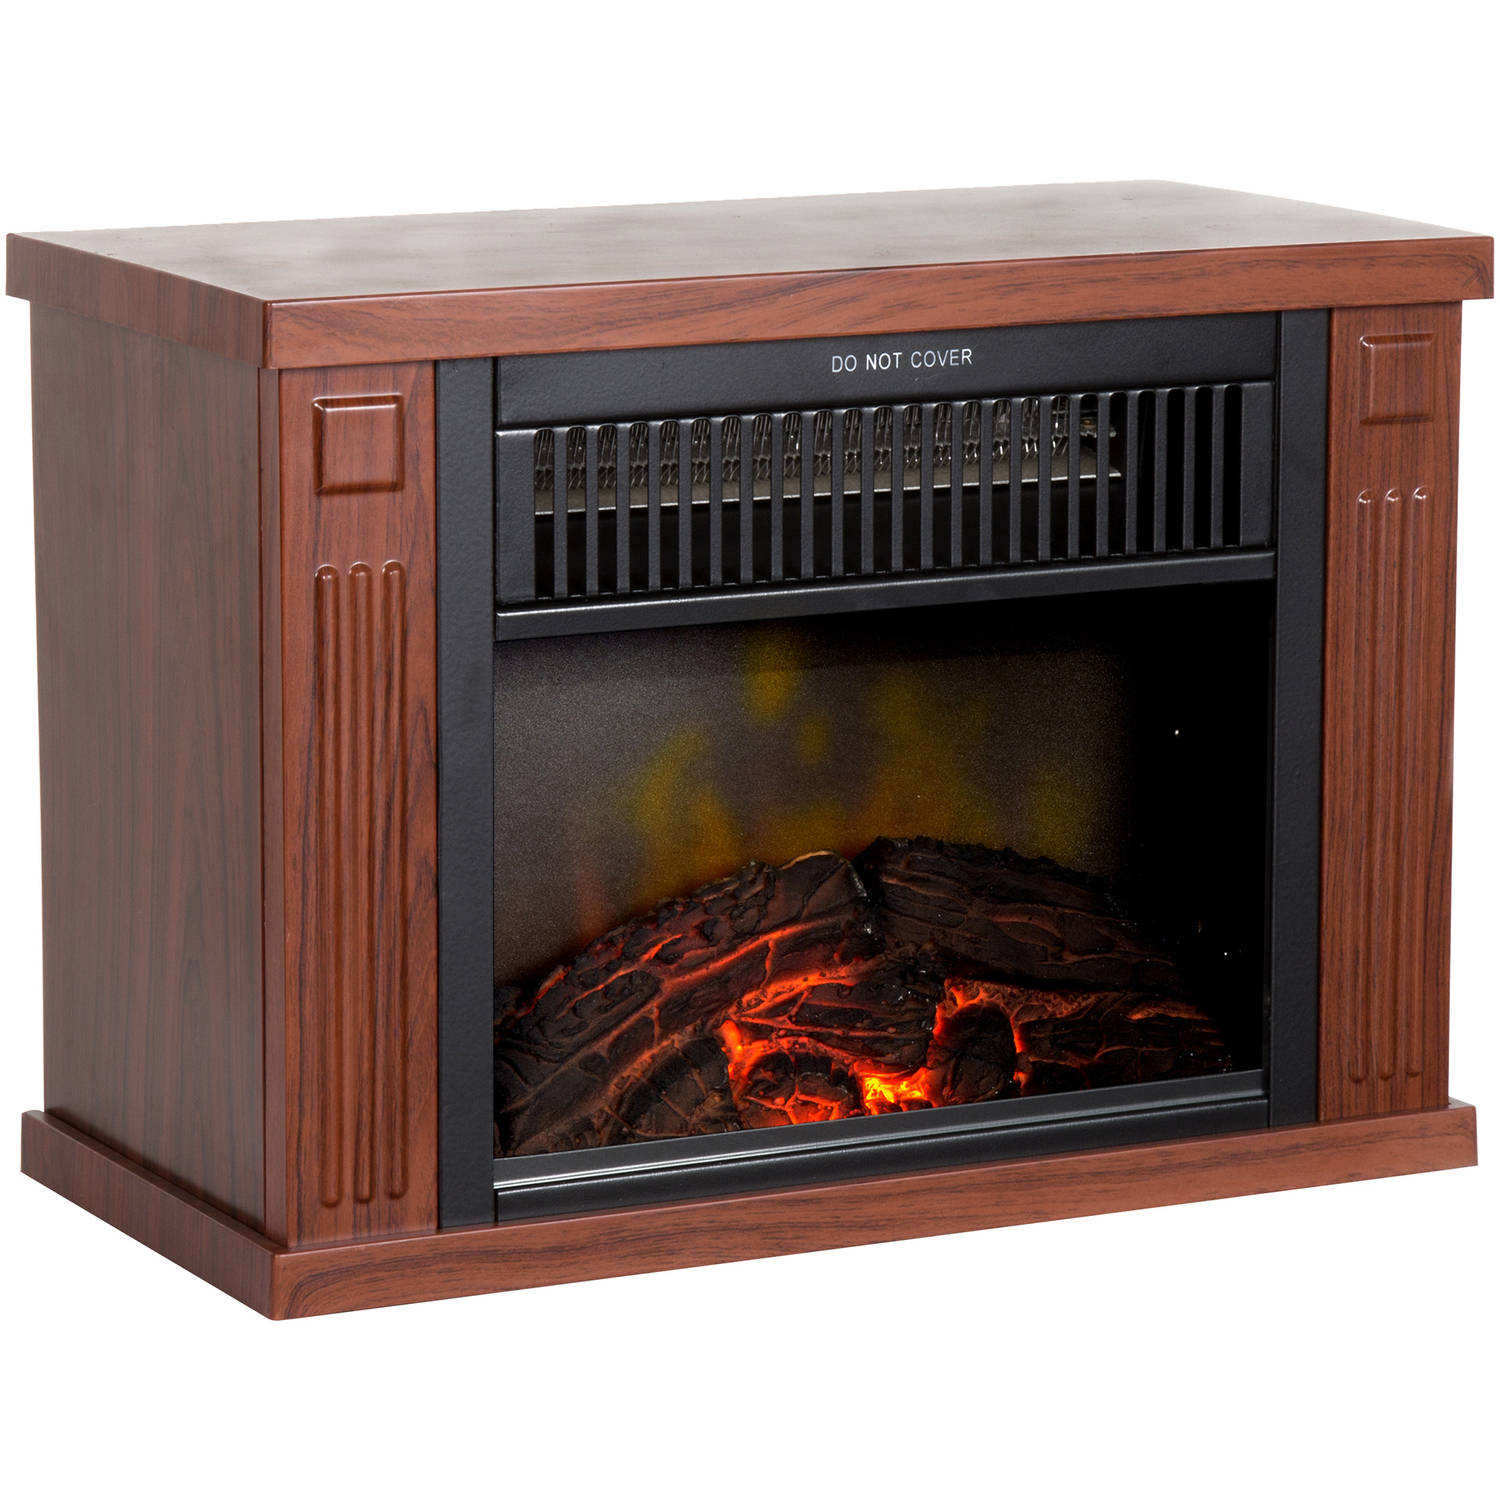 Magnificent Delonghi Electric Fireplace Heater Home Interior And Landscaping Ponolsignezvosmurscom